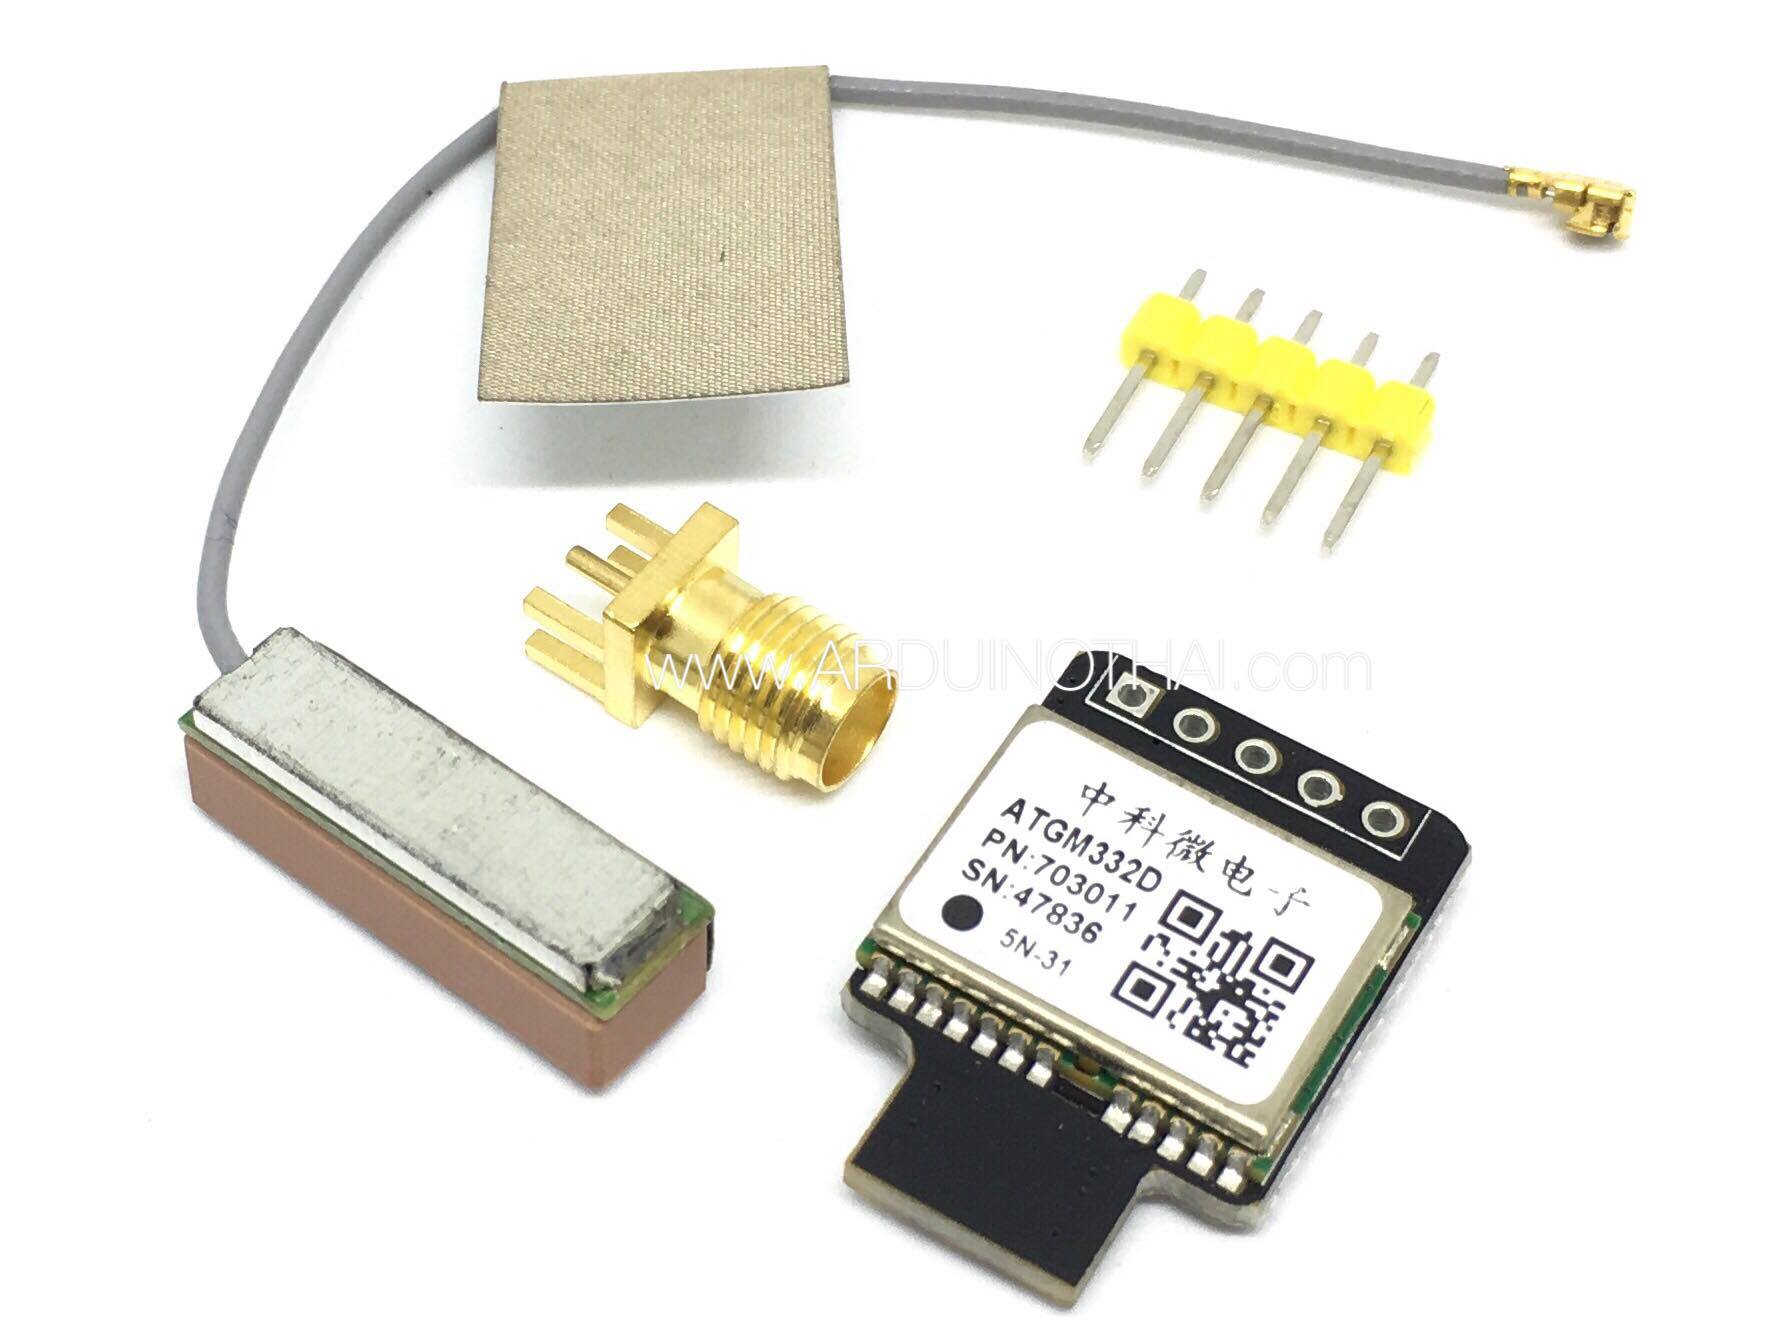 GPS ATGM332D-5N GPS Module With Flight Control EEPROM Instead Of NEO-M8N Support SMA/IPX